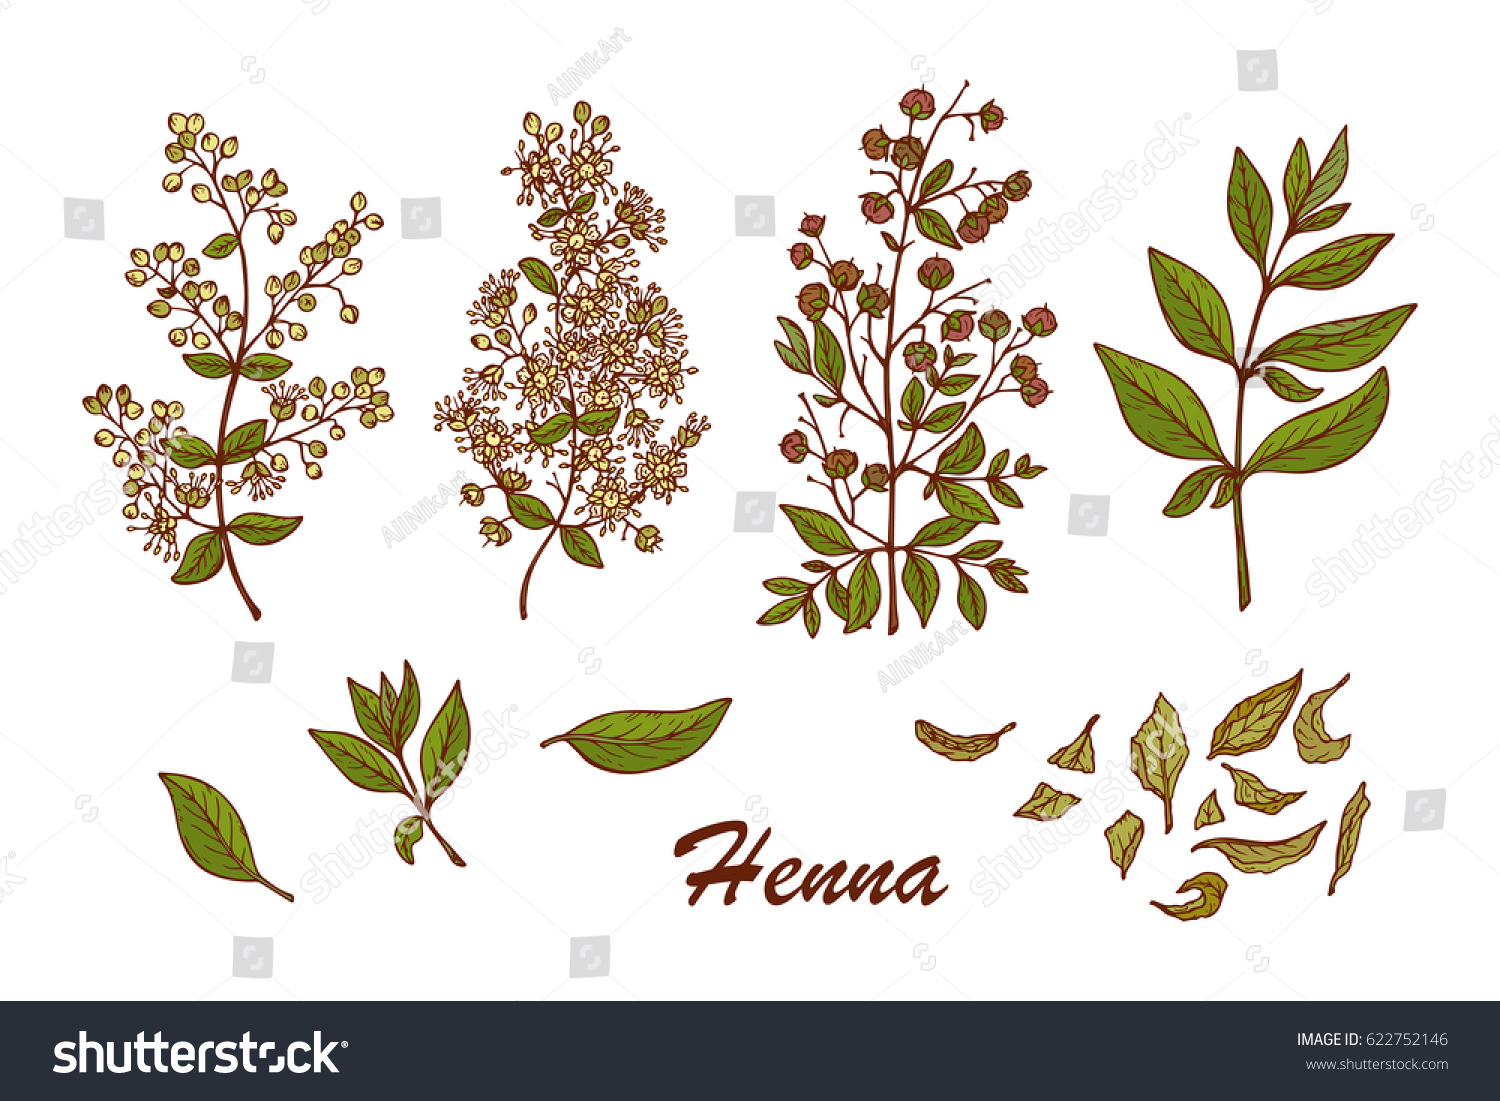 Medicinal Plants Vector Set Henna Lawsonia Stock Vector Royalty